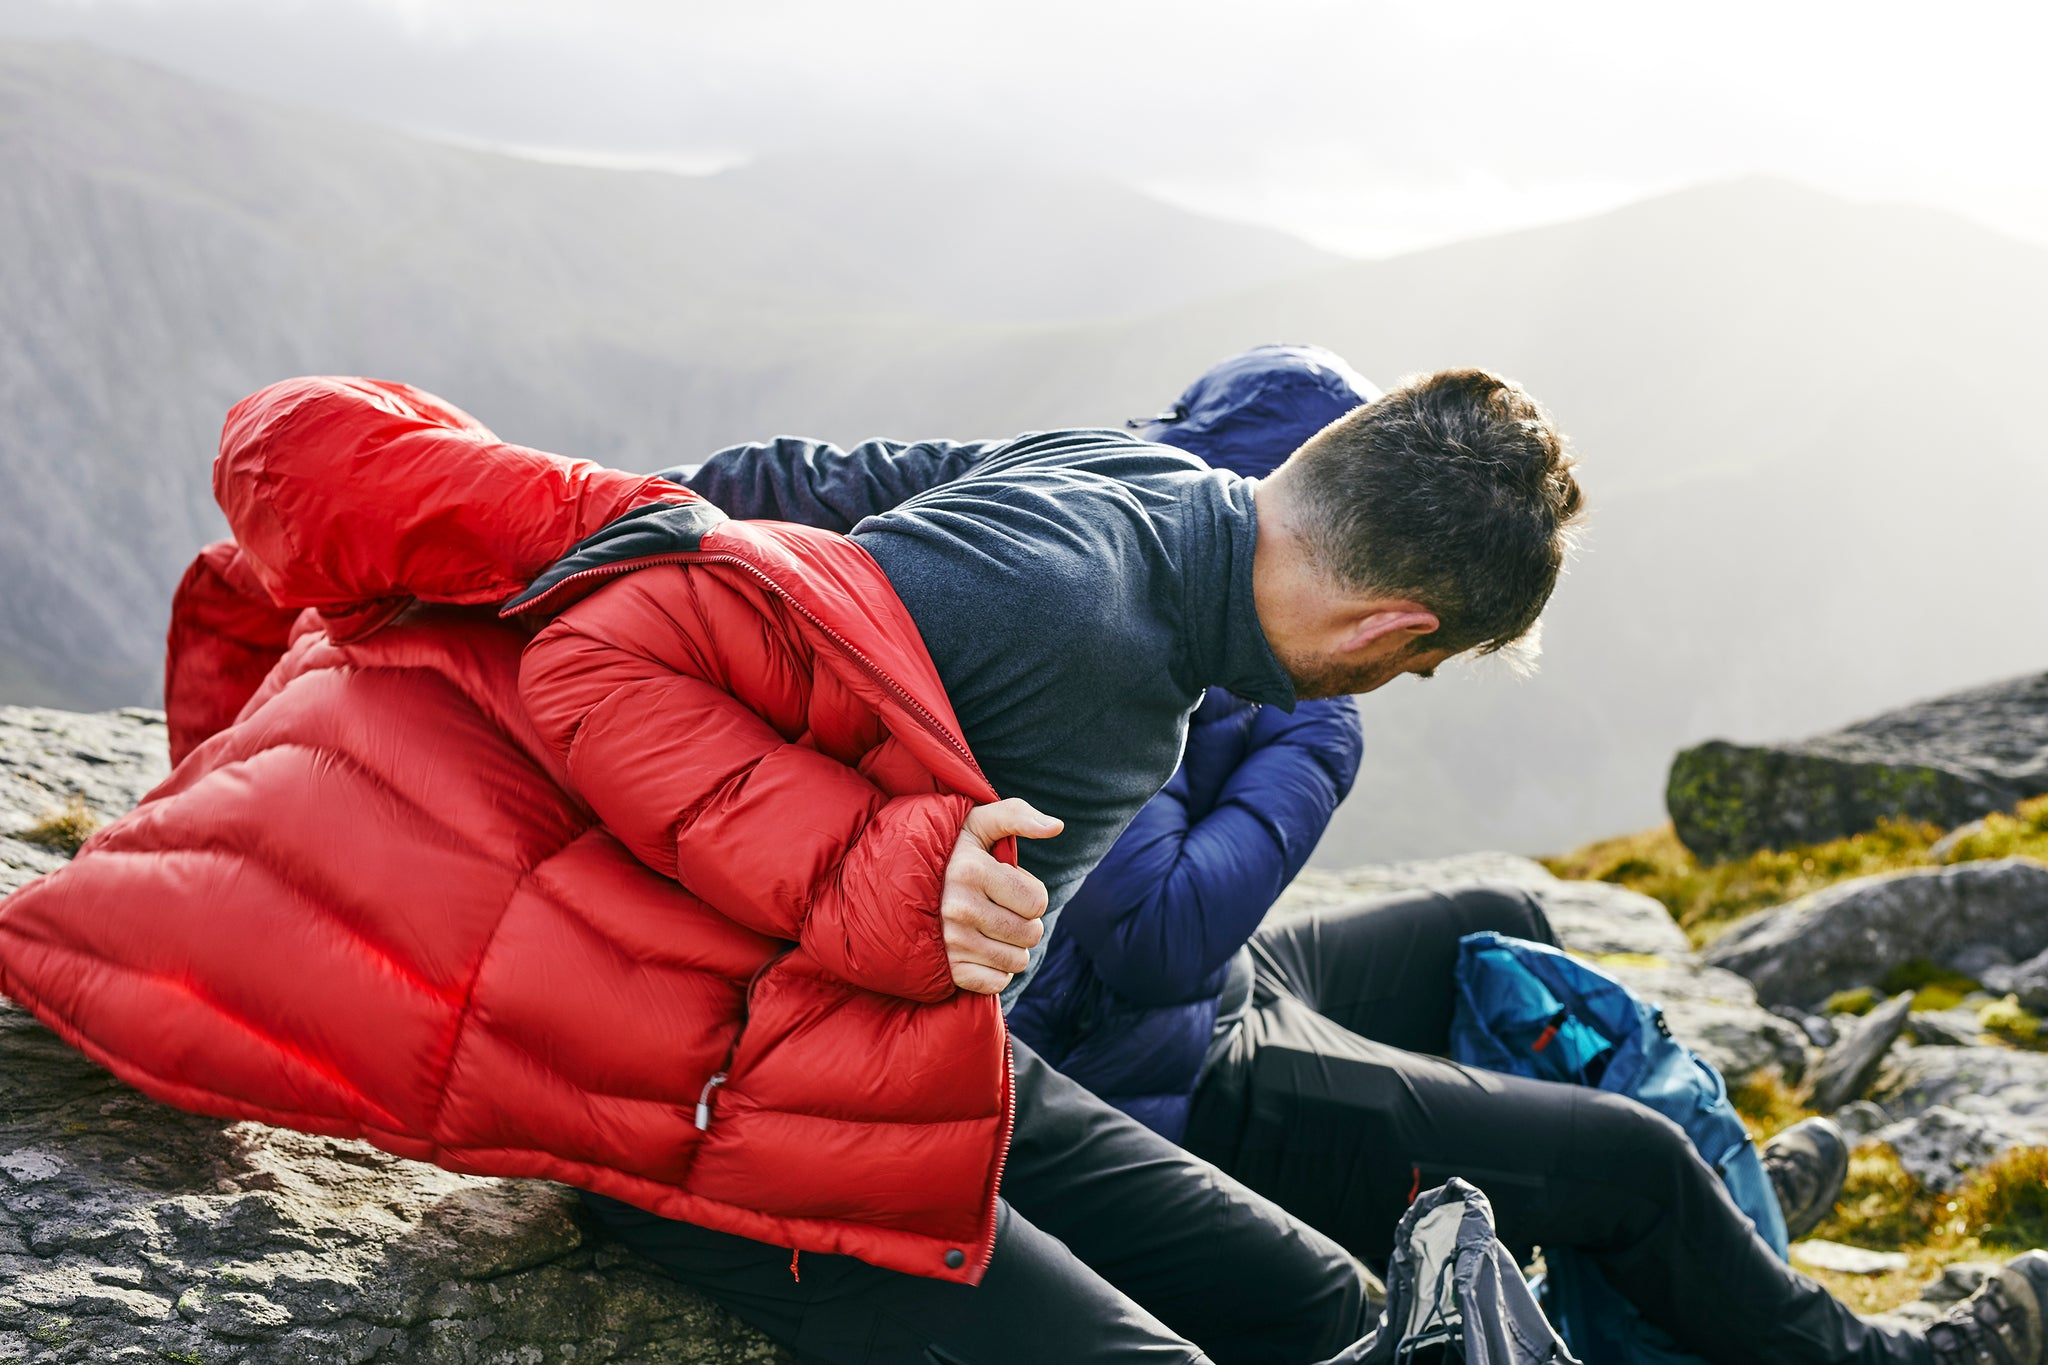 Pulling on the Fantom down jacket in Snowdonia